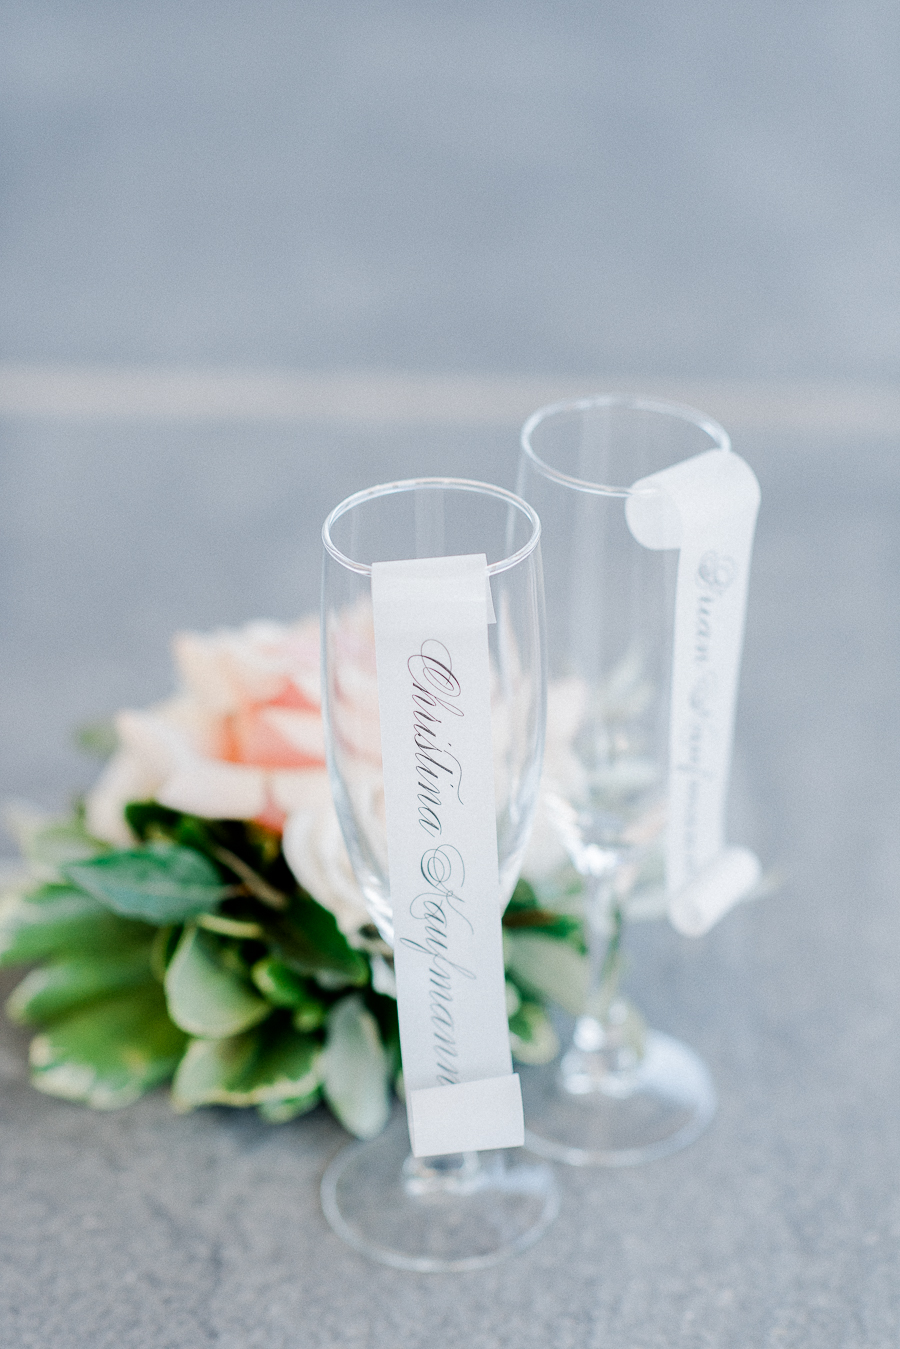 Dee Kay Events | Rachel Pearlman Photography | Jersey Shore Wedding Planner Dee Kay Events | Rachel Pearlman Photography | Jersey Shore Wedding Planner | New Jersey Wedding Planner